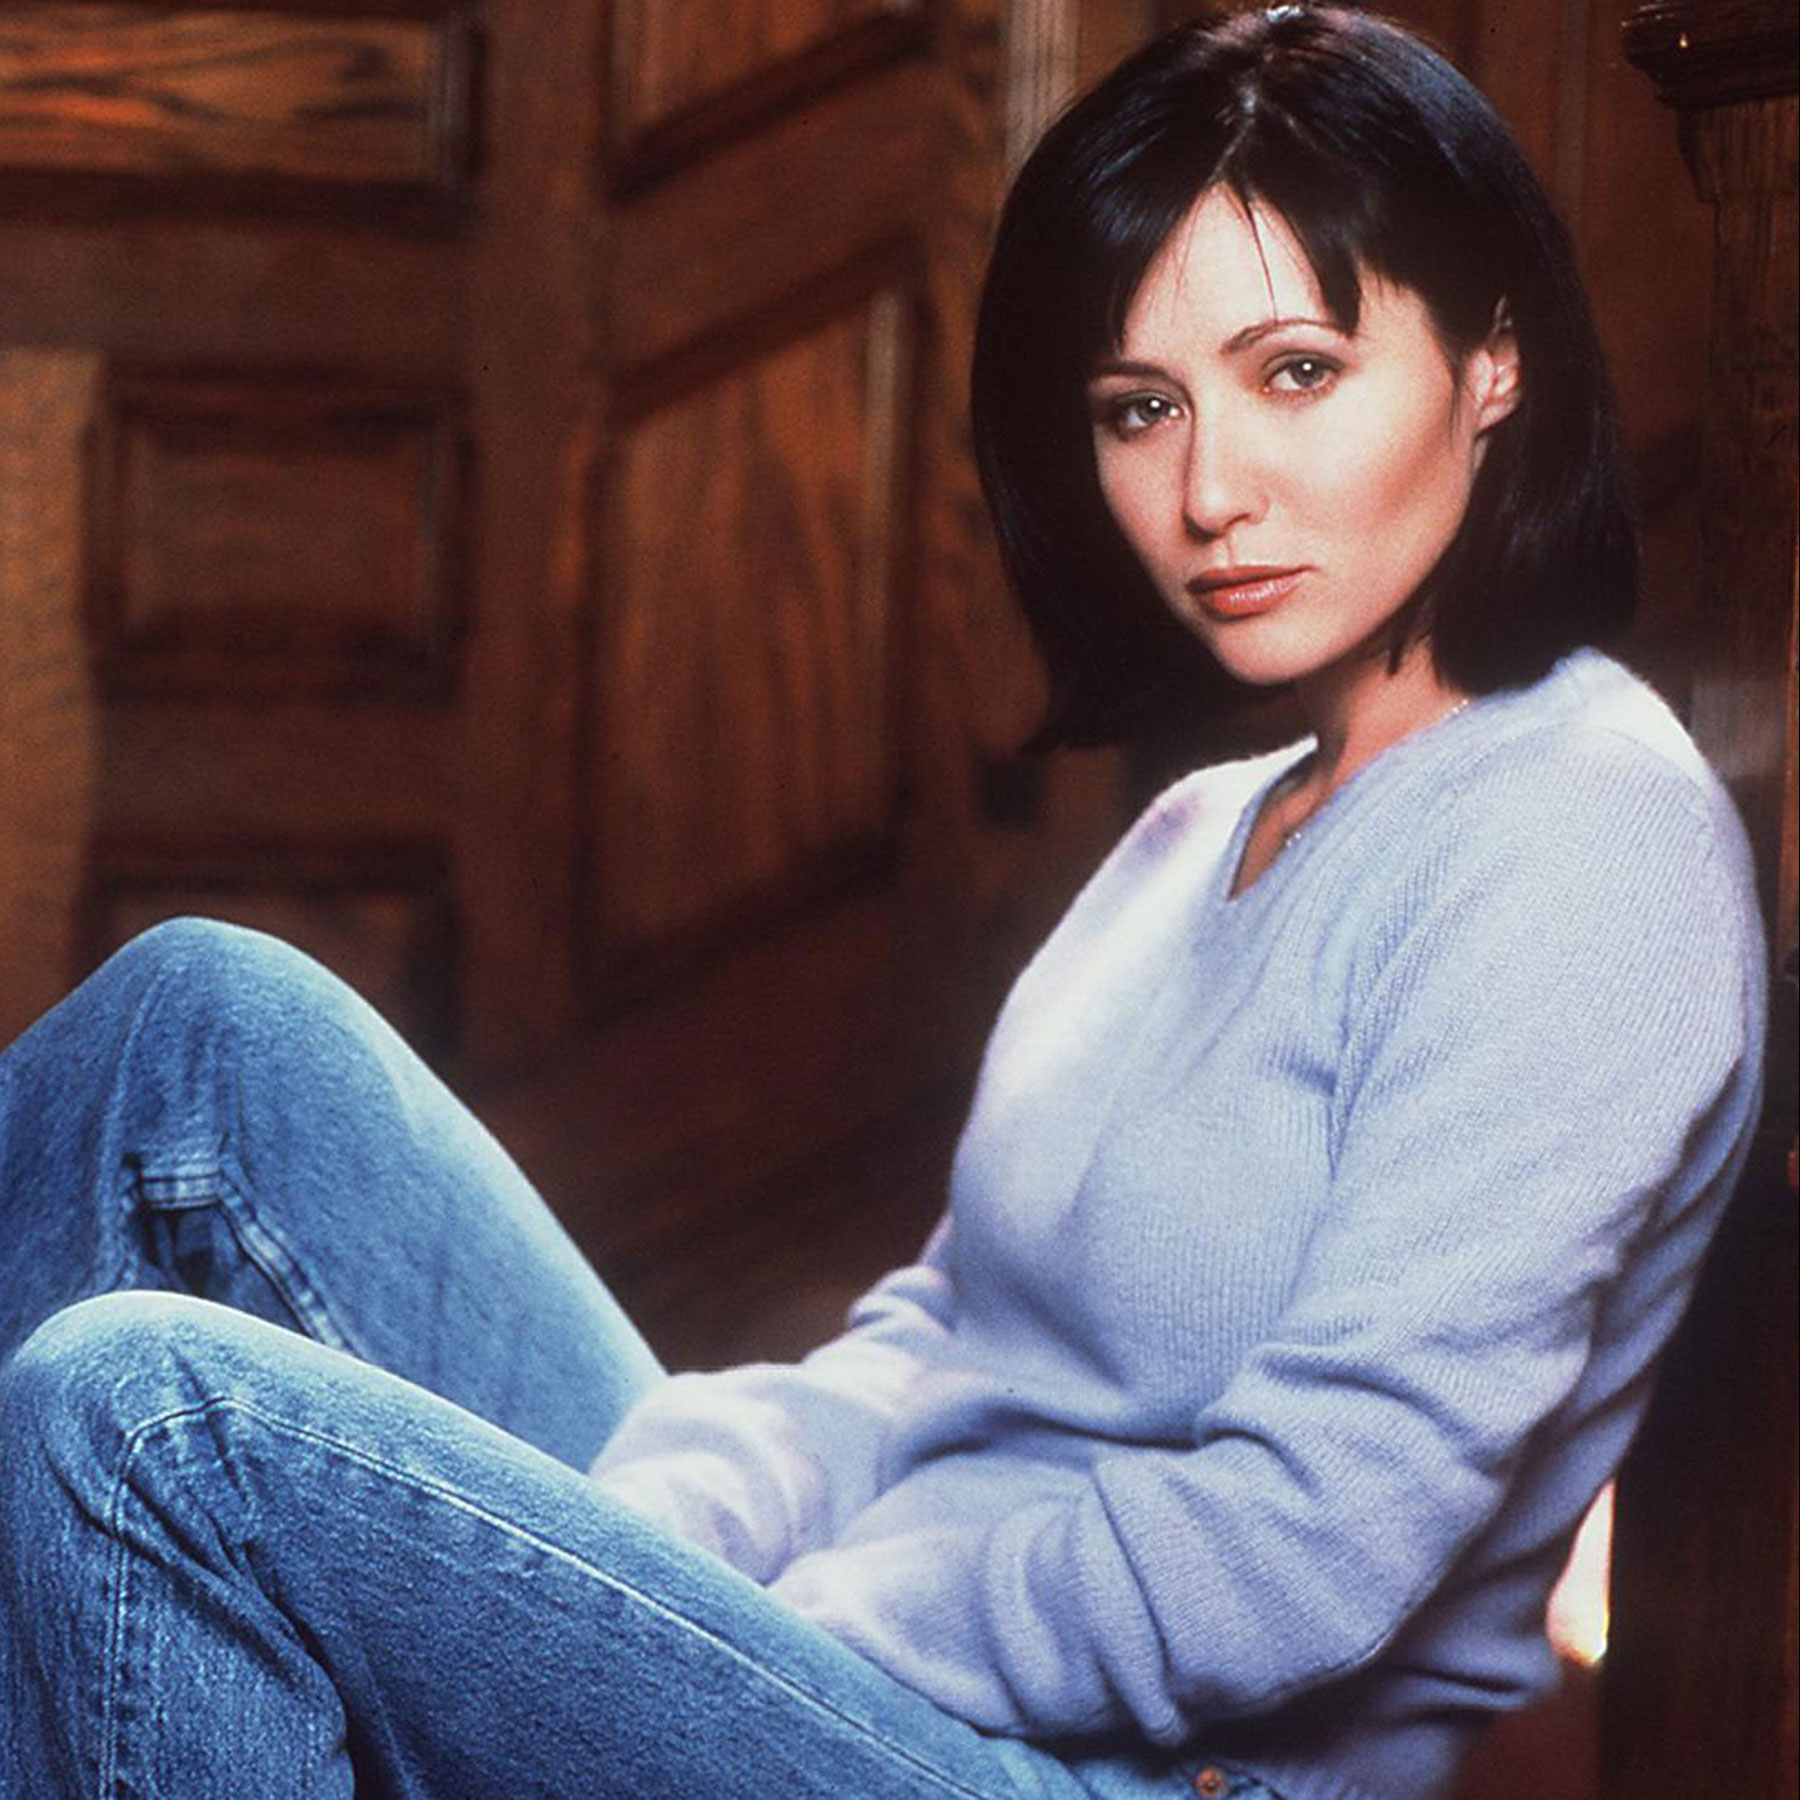 Shannen Doherty Stars In The New Series Charmed